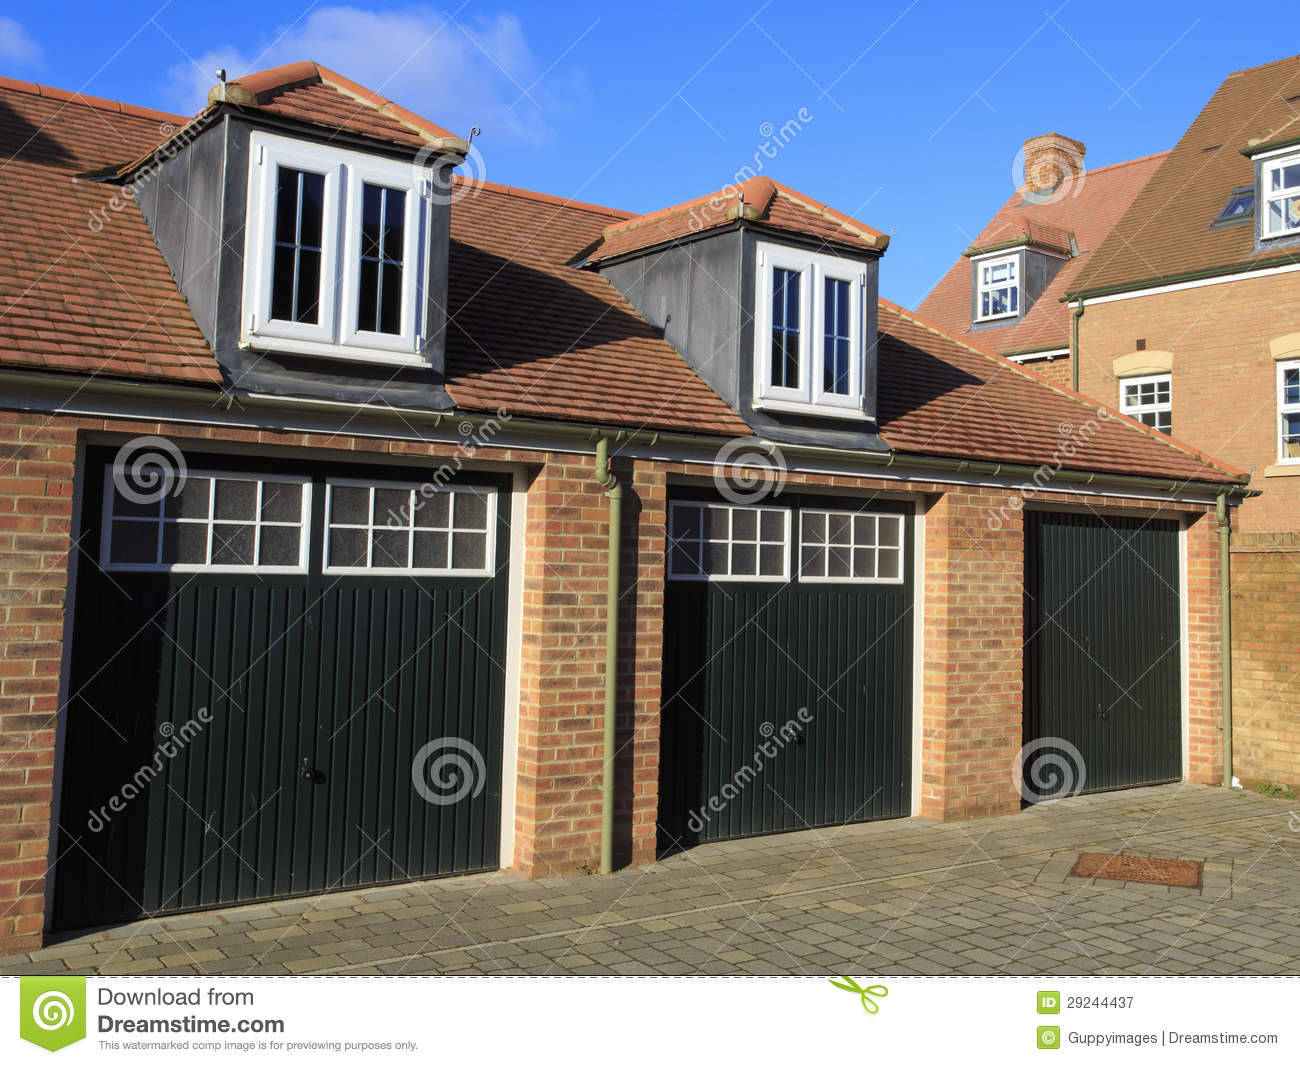 Traditional Style Garages With Wooden Doors And Dormer Windows Stock on cupola styles, dormer balcony, cape dormer styles, dormer types, dormer windows blueprint, dormer before and after, dormer lights, dormer designs, dormers on houses styles, dormer architecture, dormer roof windows, home dormer styles, dormer windows from the inside, dormer roof styles, dormer flashing, dormer siding, dormer ideas, dormer details, dormer roofing, dormer trim,